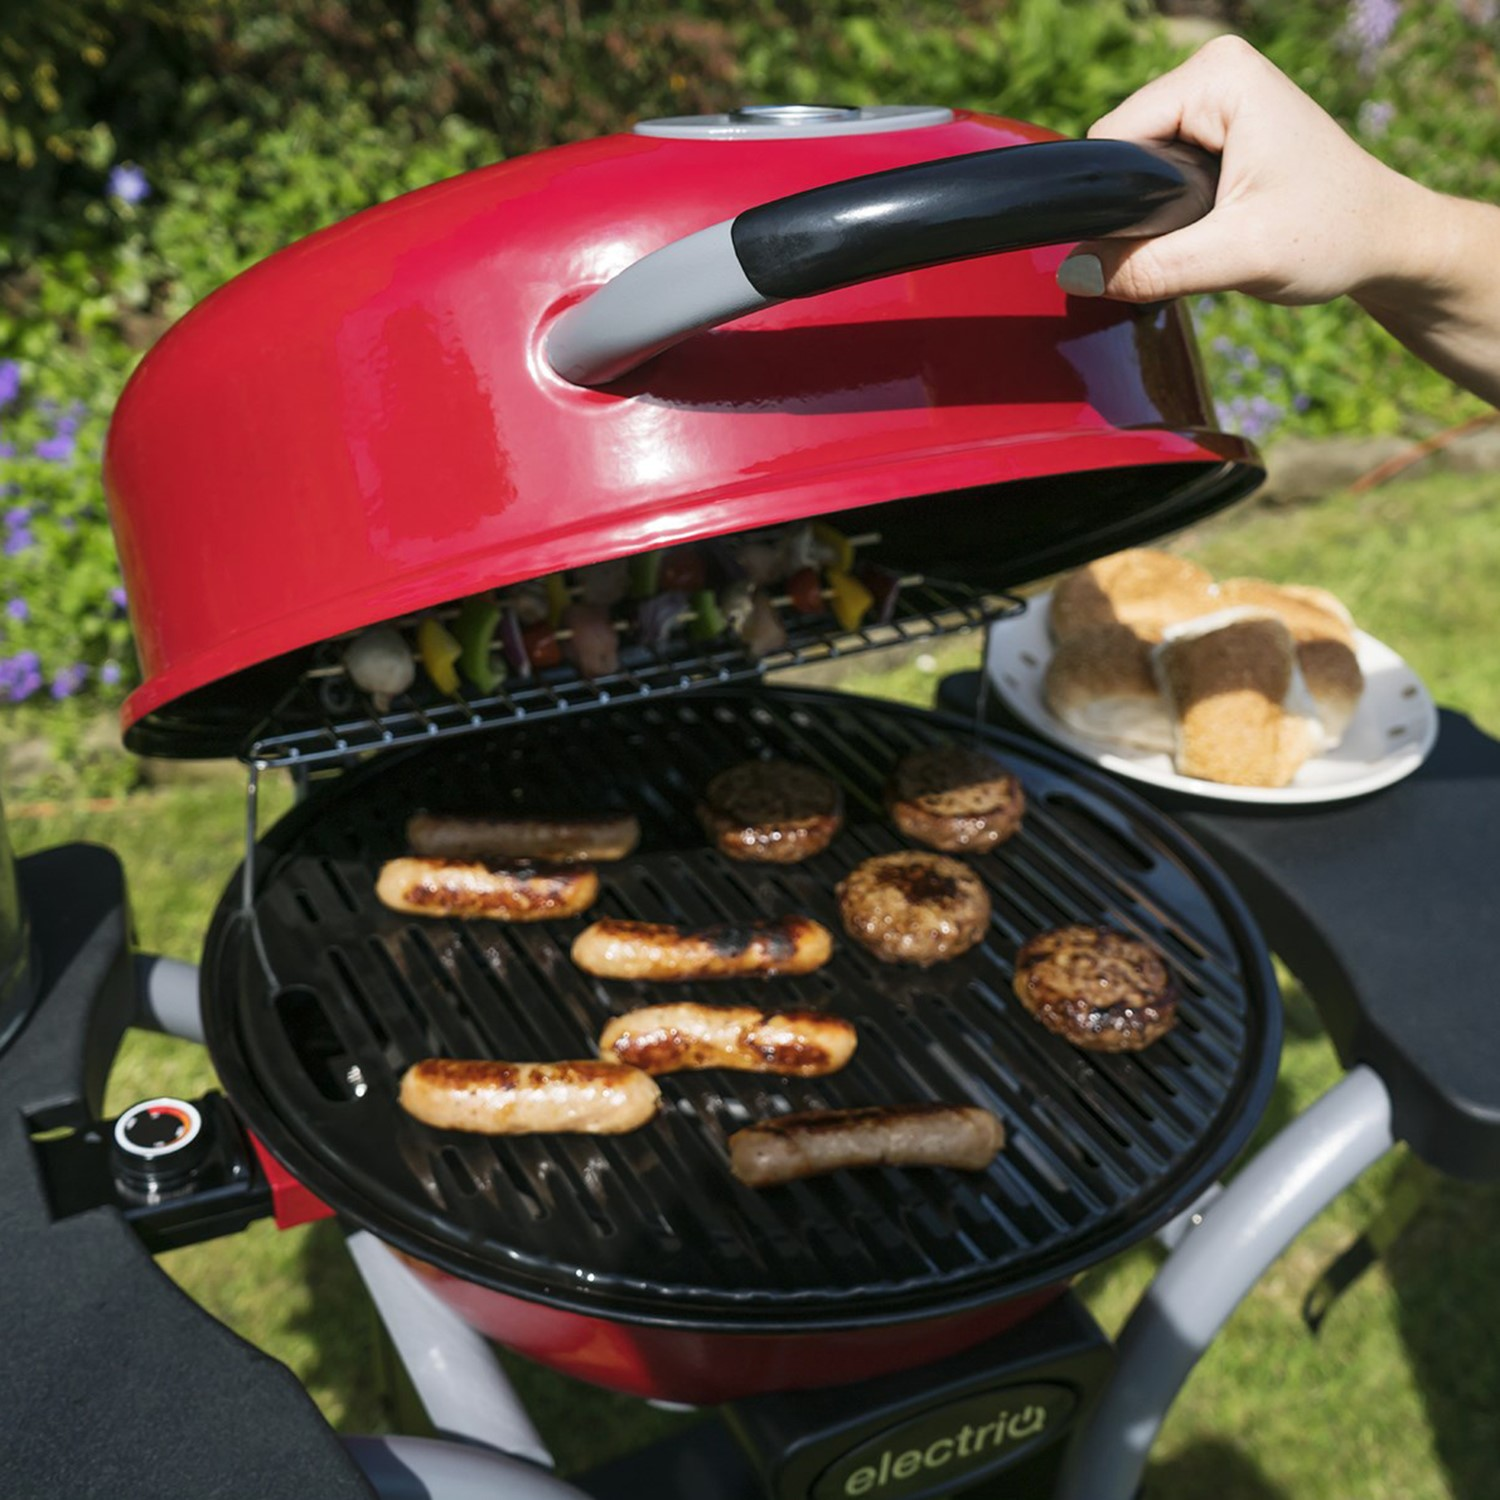 Red Compact Outdoor Electric BBQ With Cover | electriQ